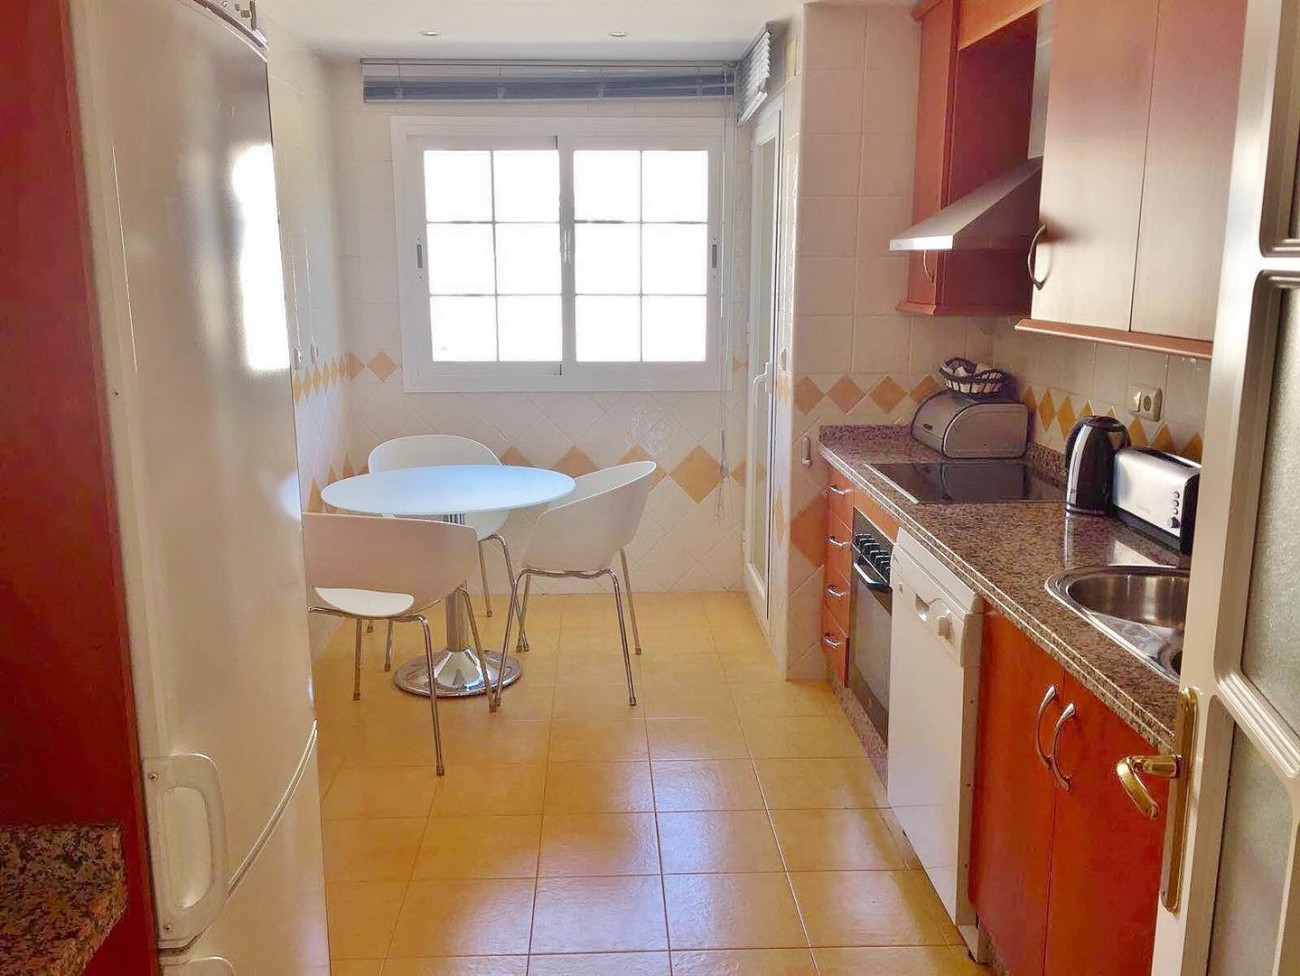 3 Bedrooms apartment for rent East Marbella (2) (Large)